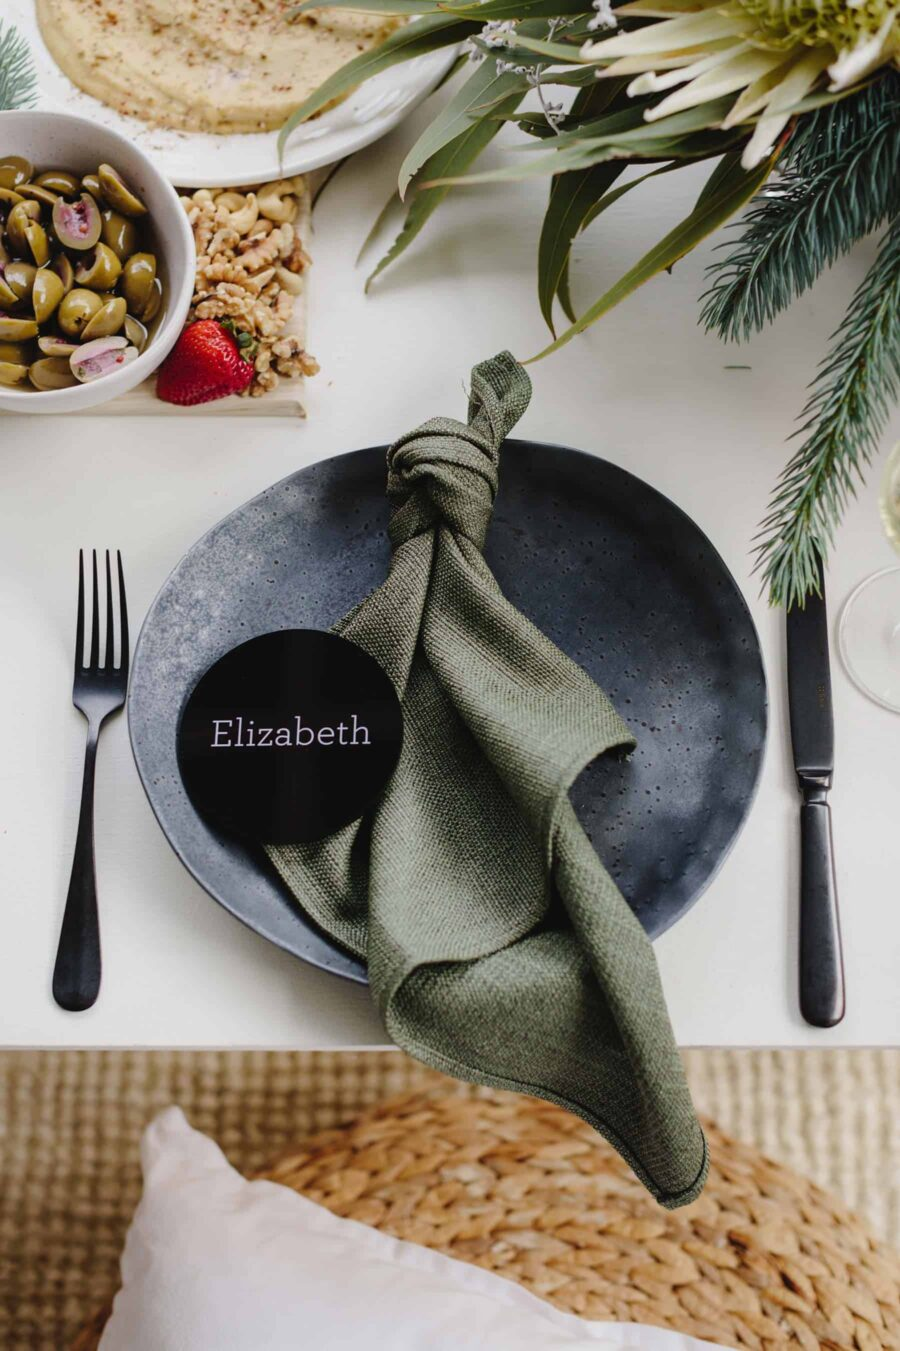 tied linen napkin on black plate with round acrylic place card